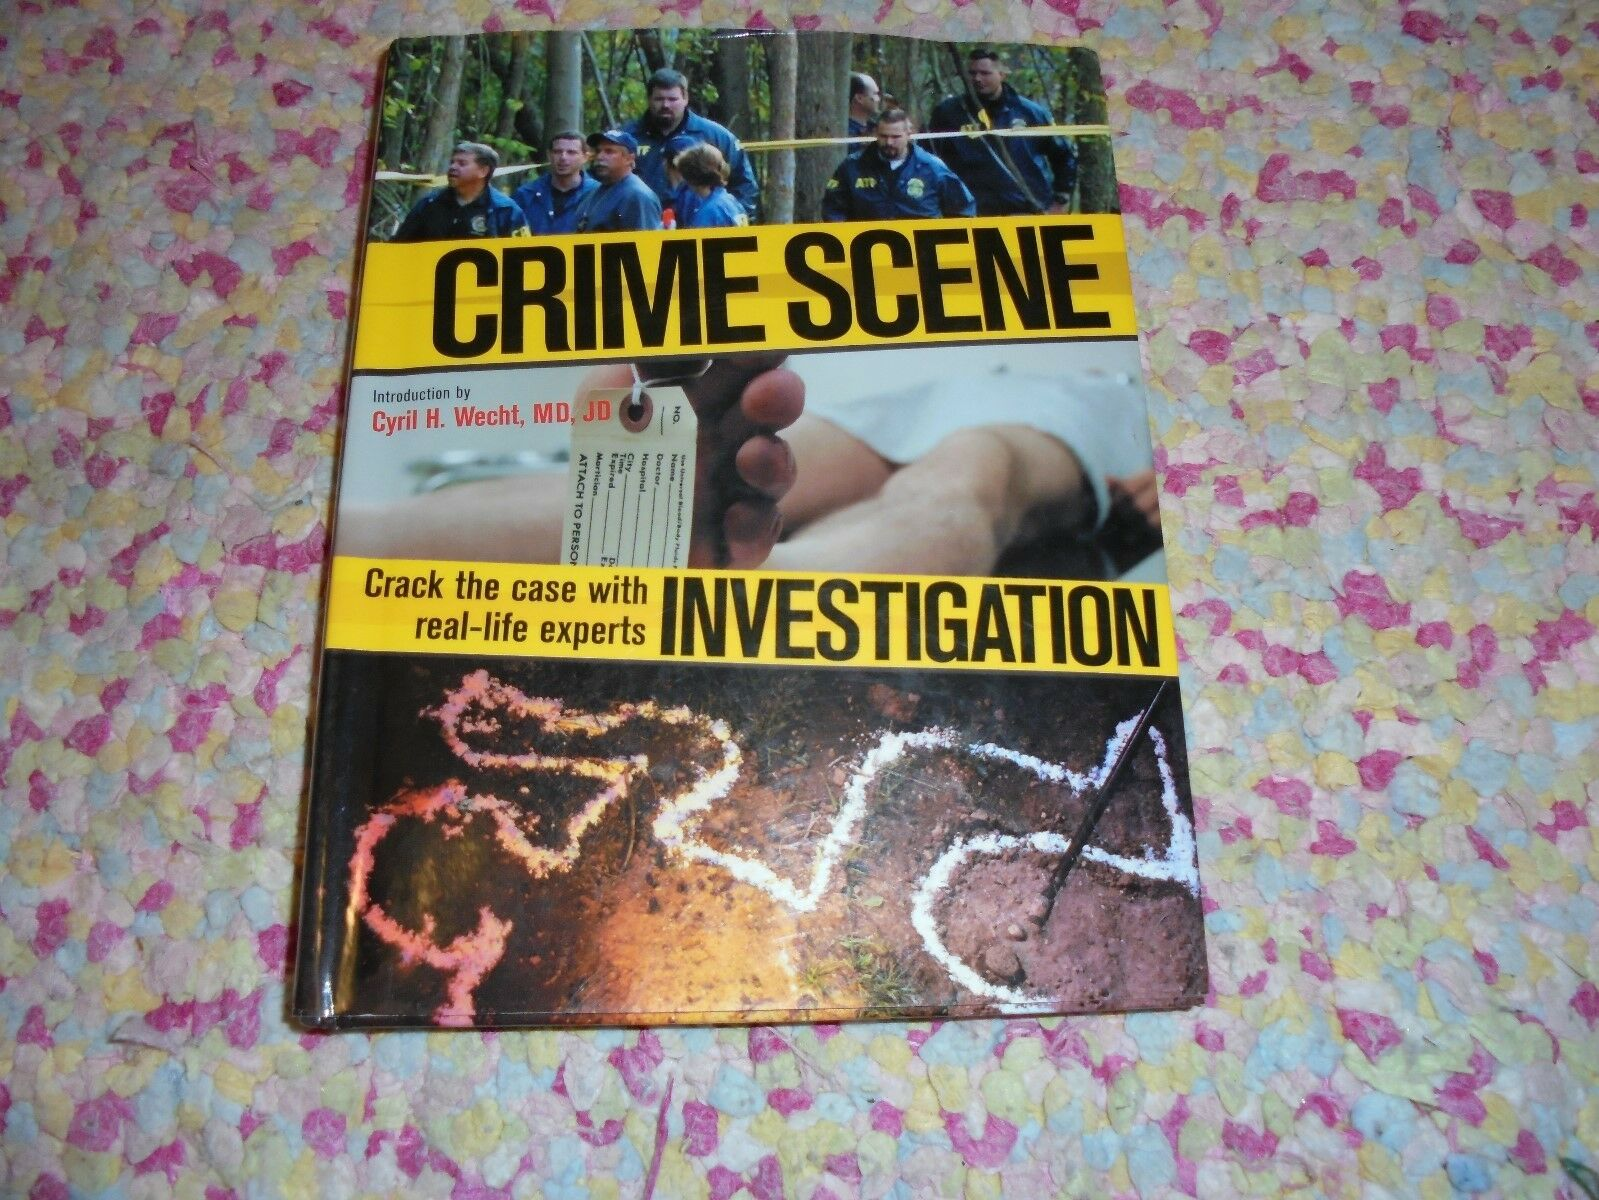 the life of a crime scene Forensic science is the application of science to real-life crime scene investigators and forensic scientists warn that popular television shows do not give.